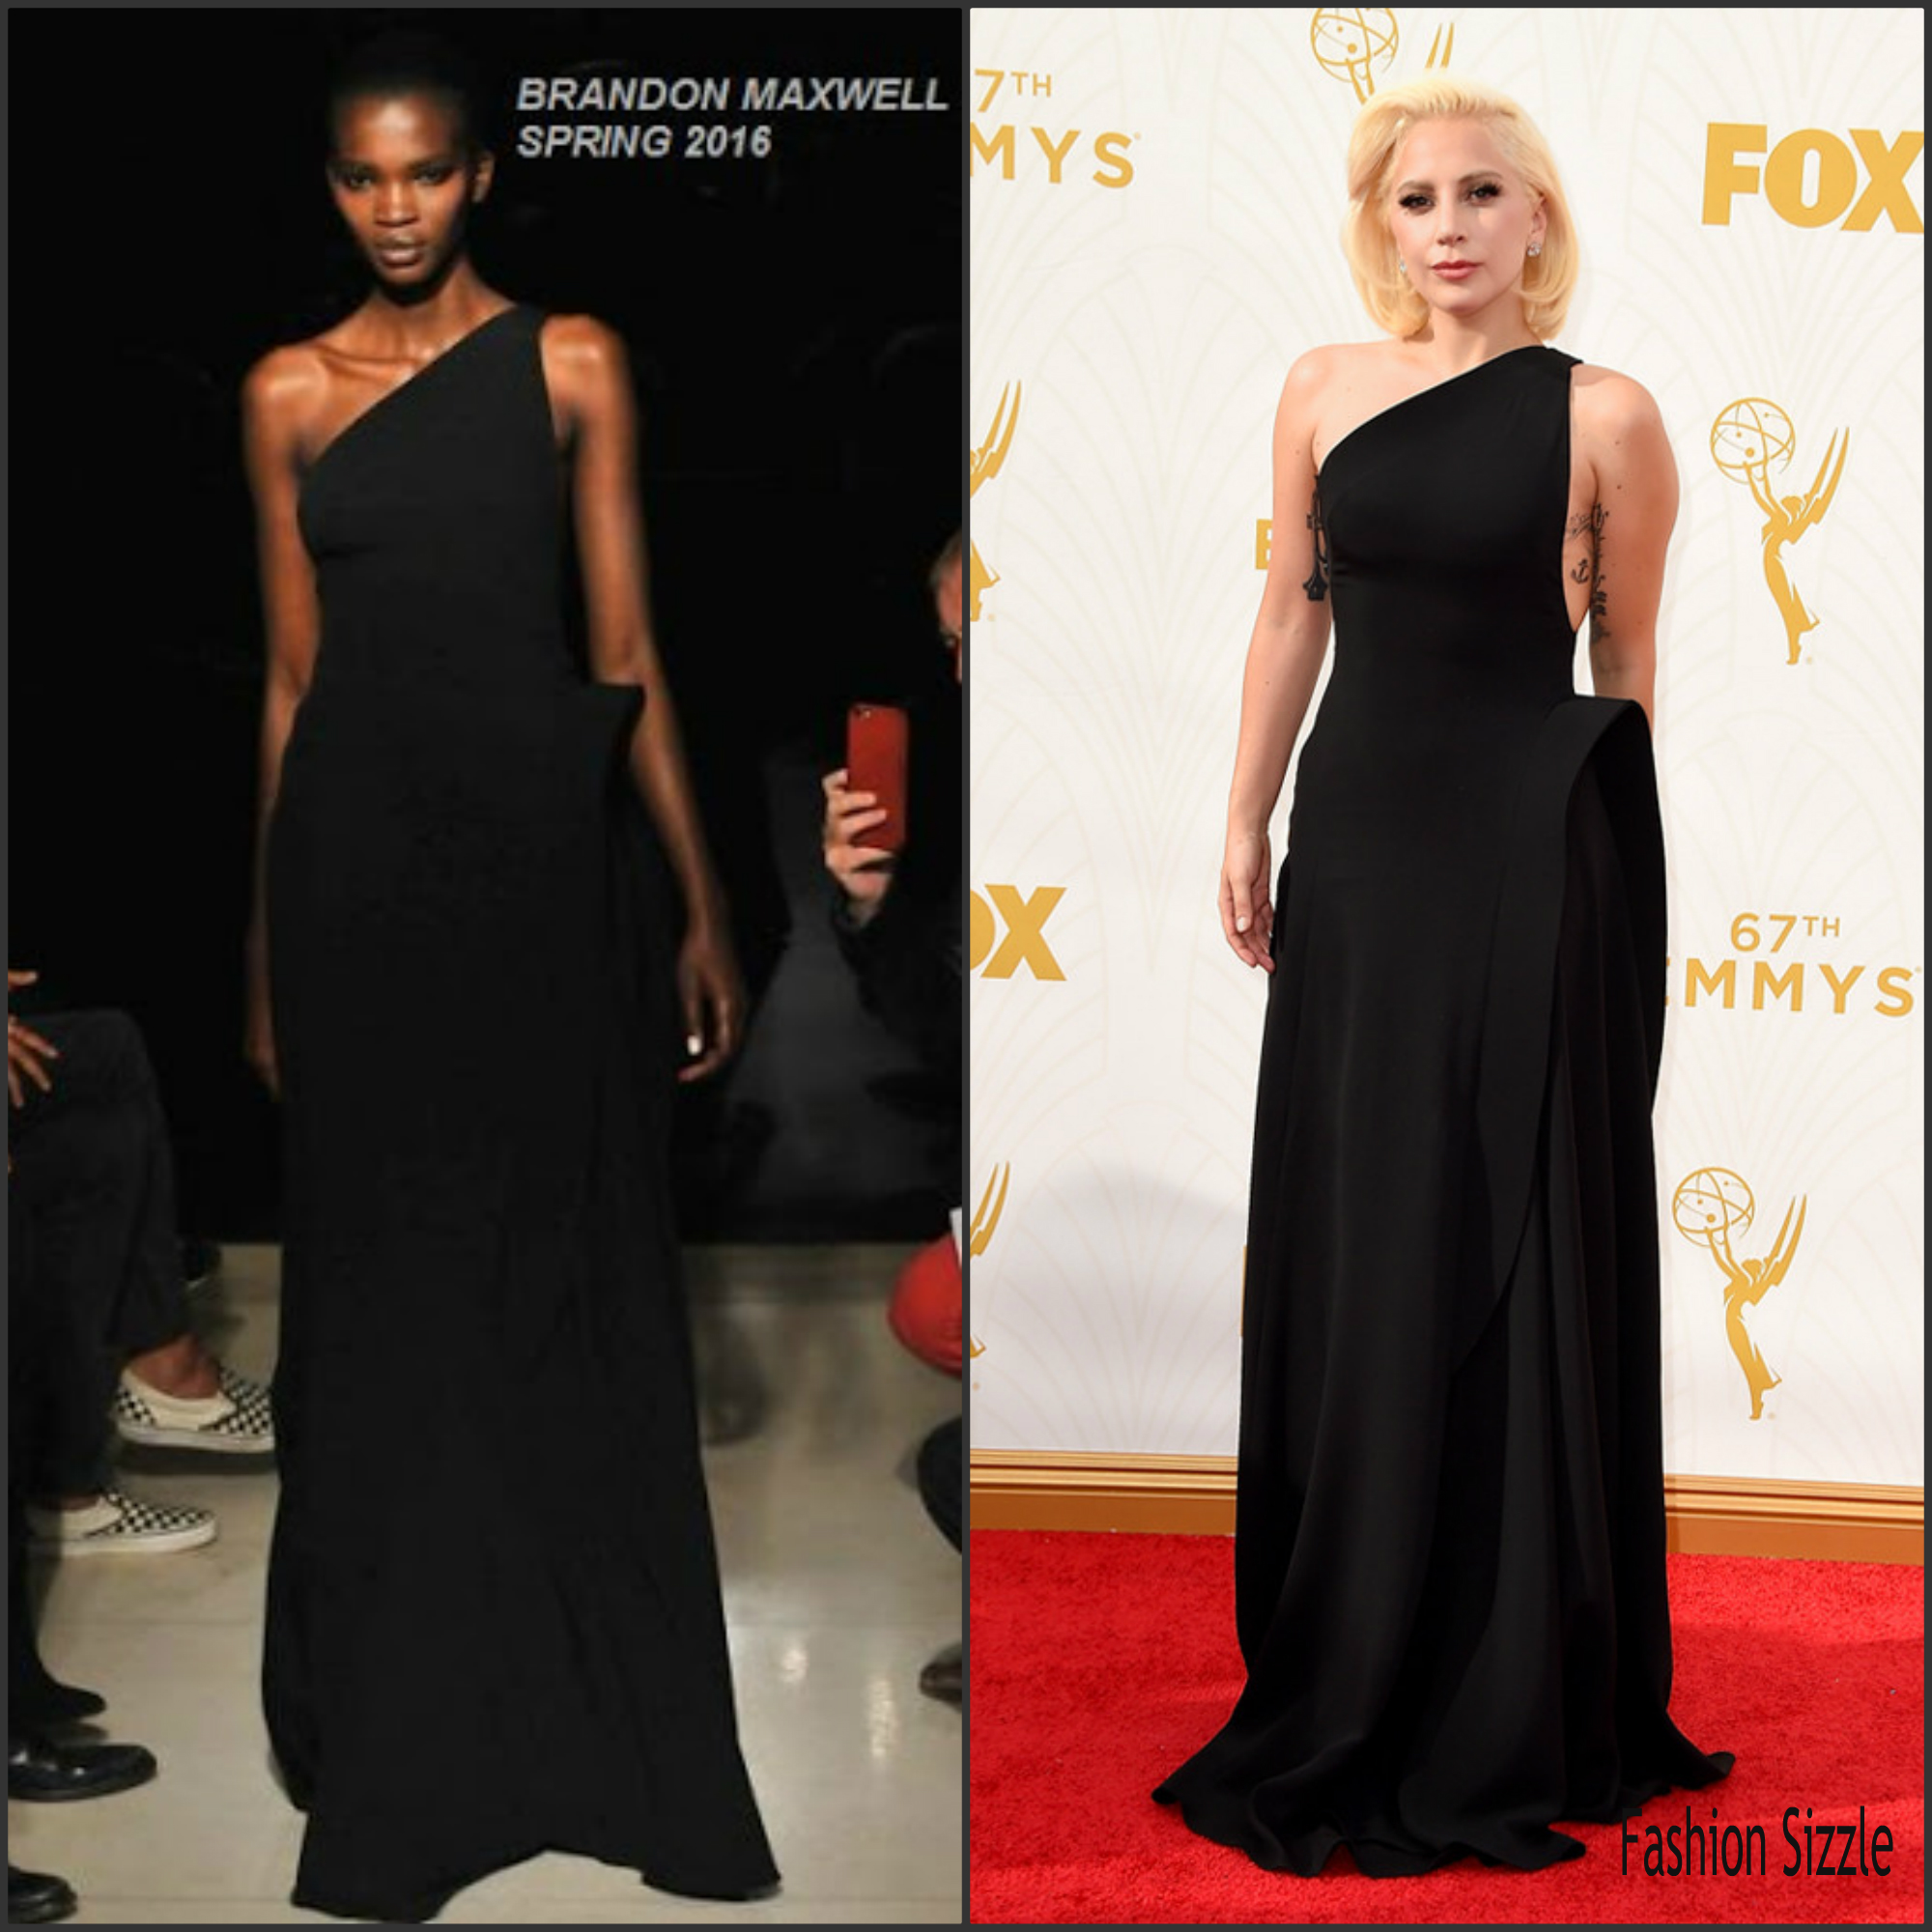 lady-gaga-in-brandon-maxwell-2015-emmy-awards